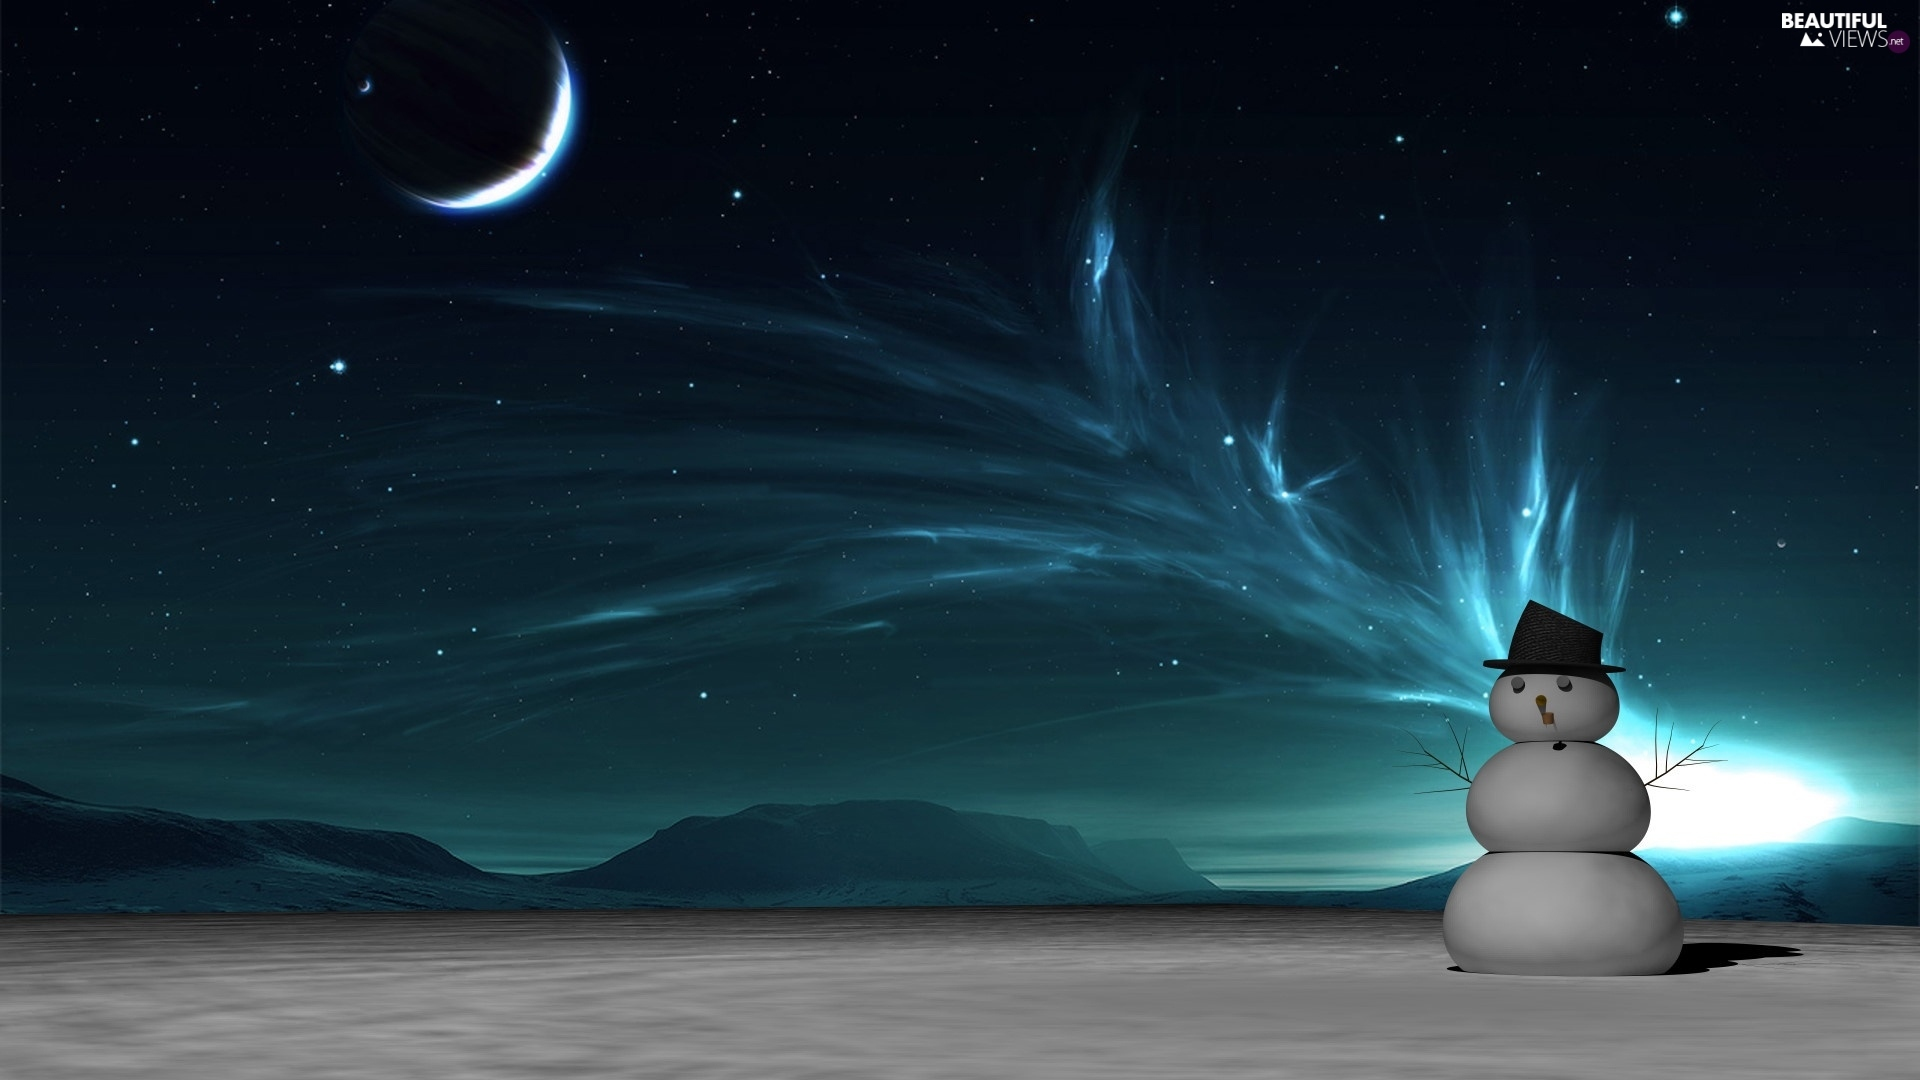 Snowman, winter, moon, aurora polaris